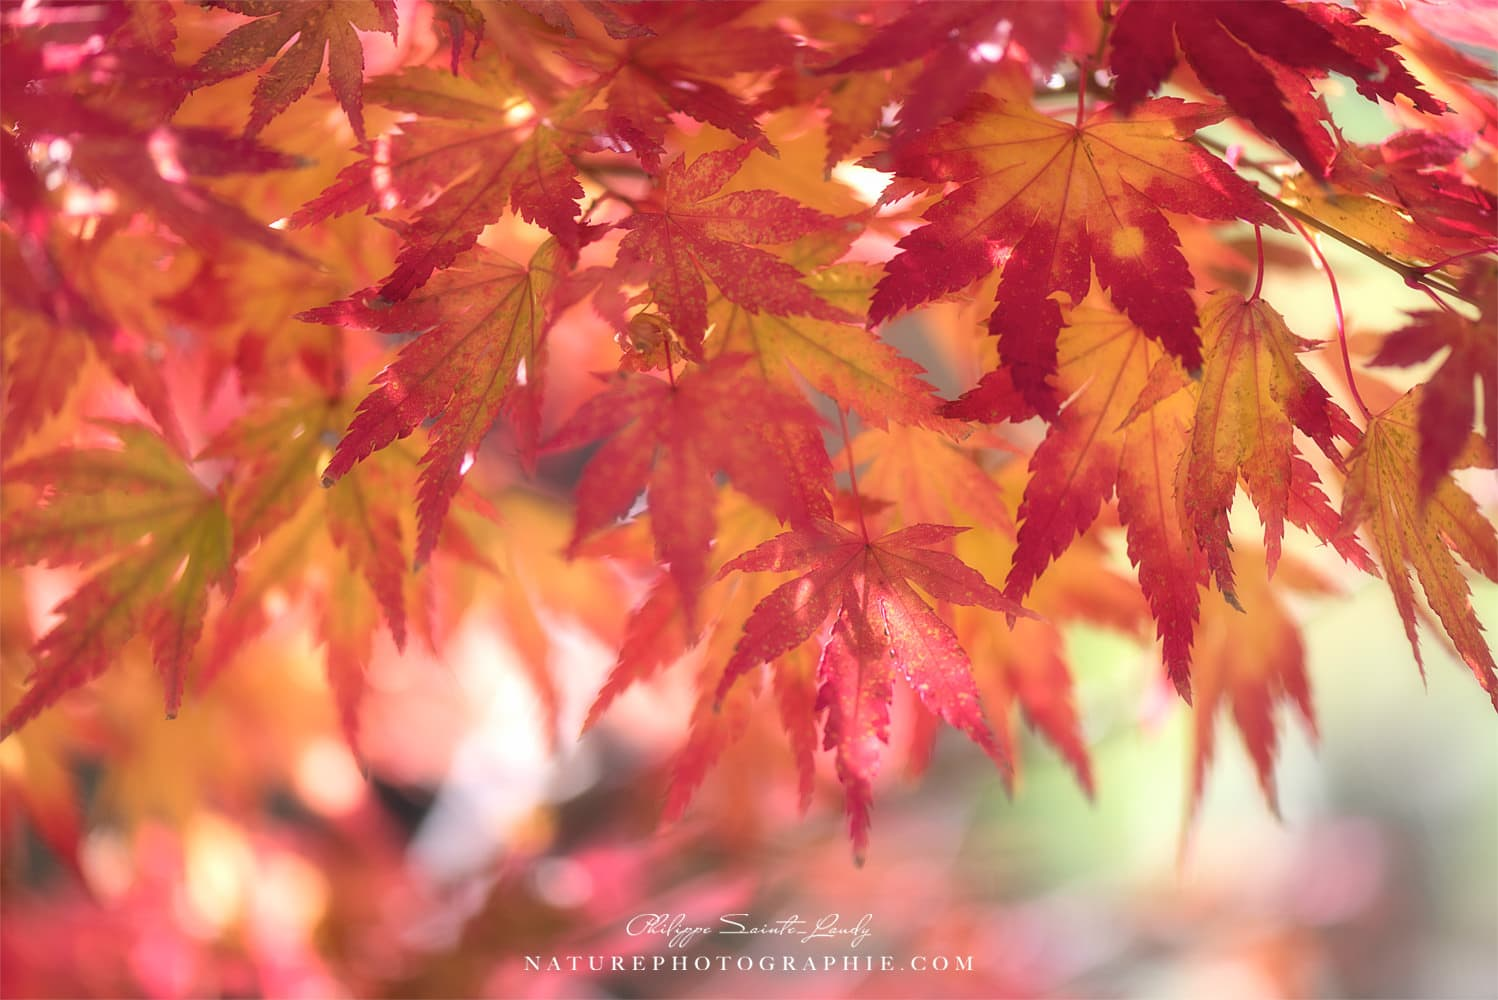 Curtain Of Autumn Leaves